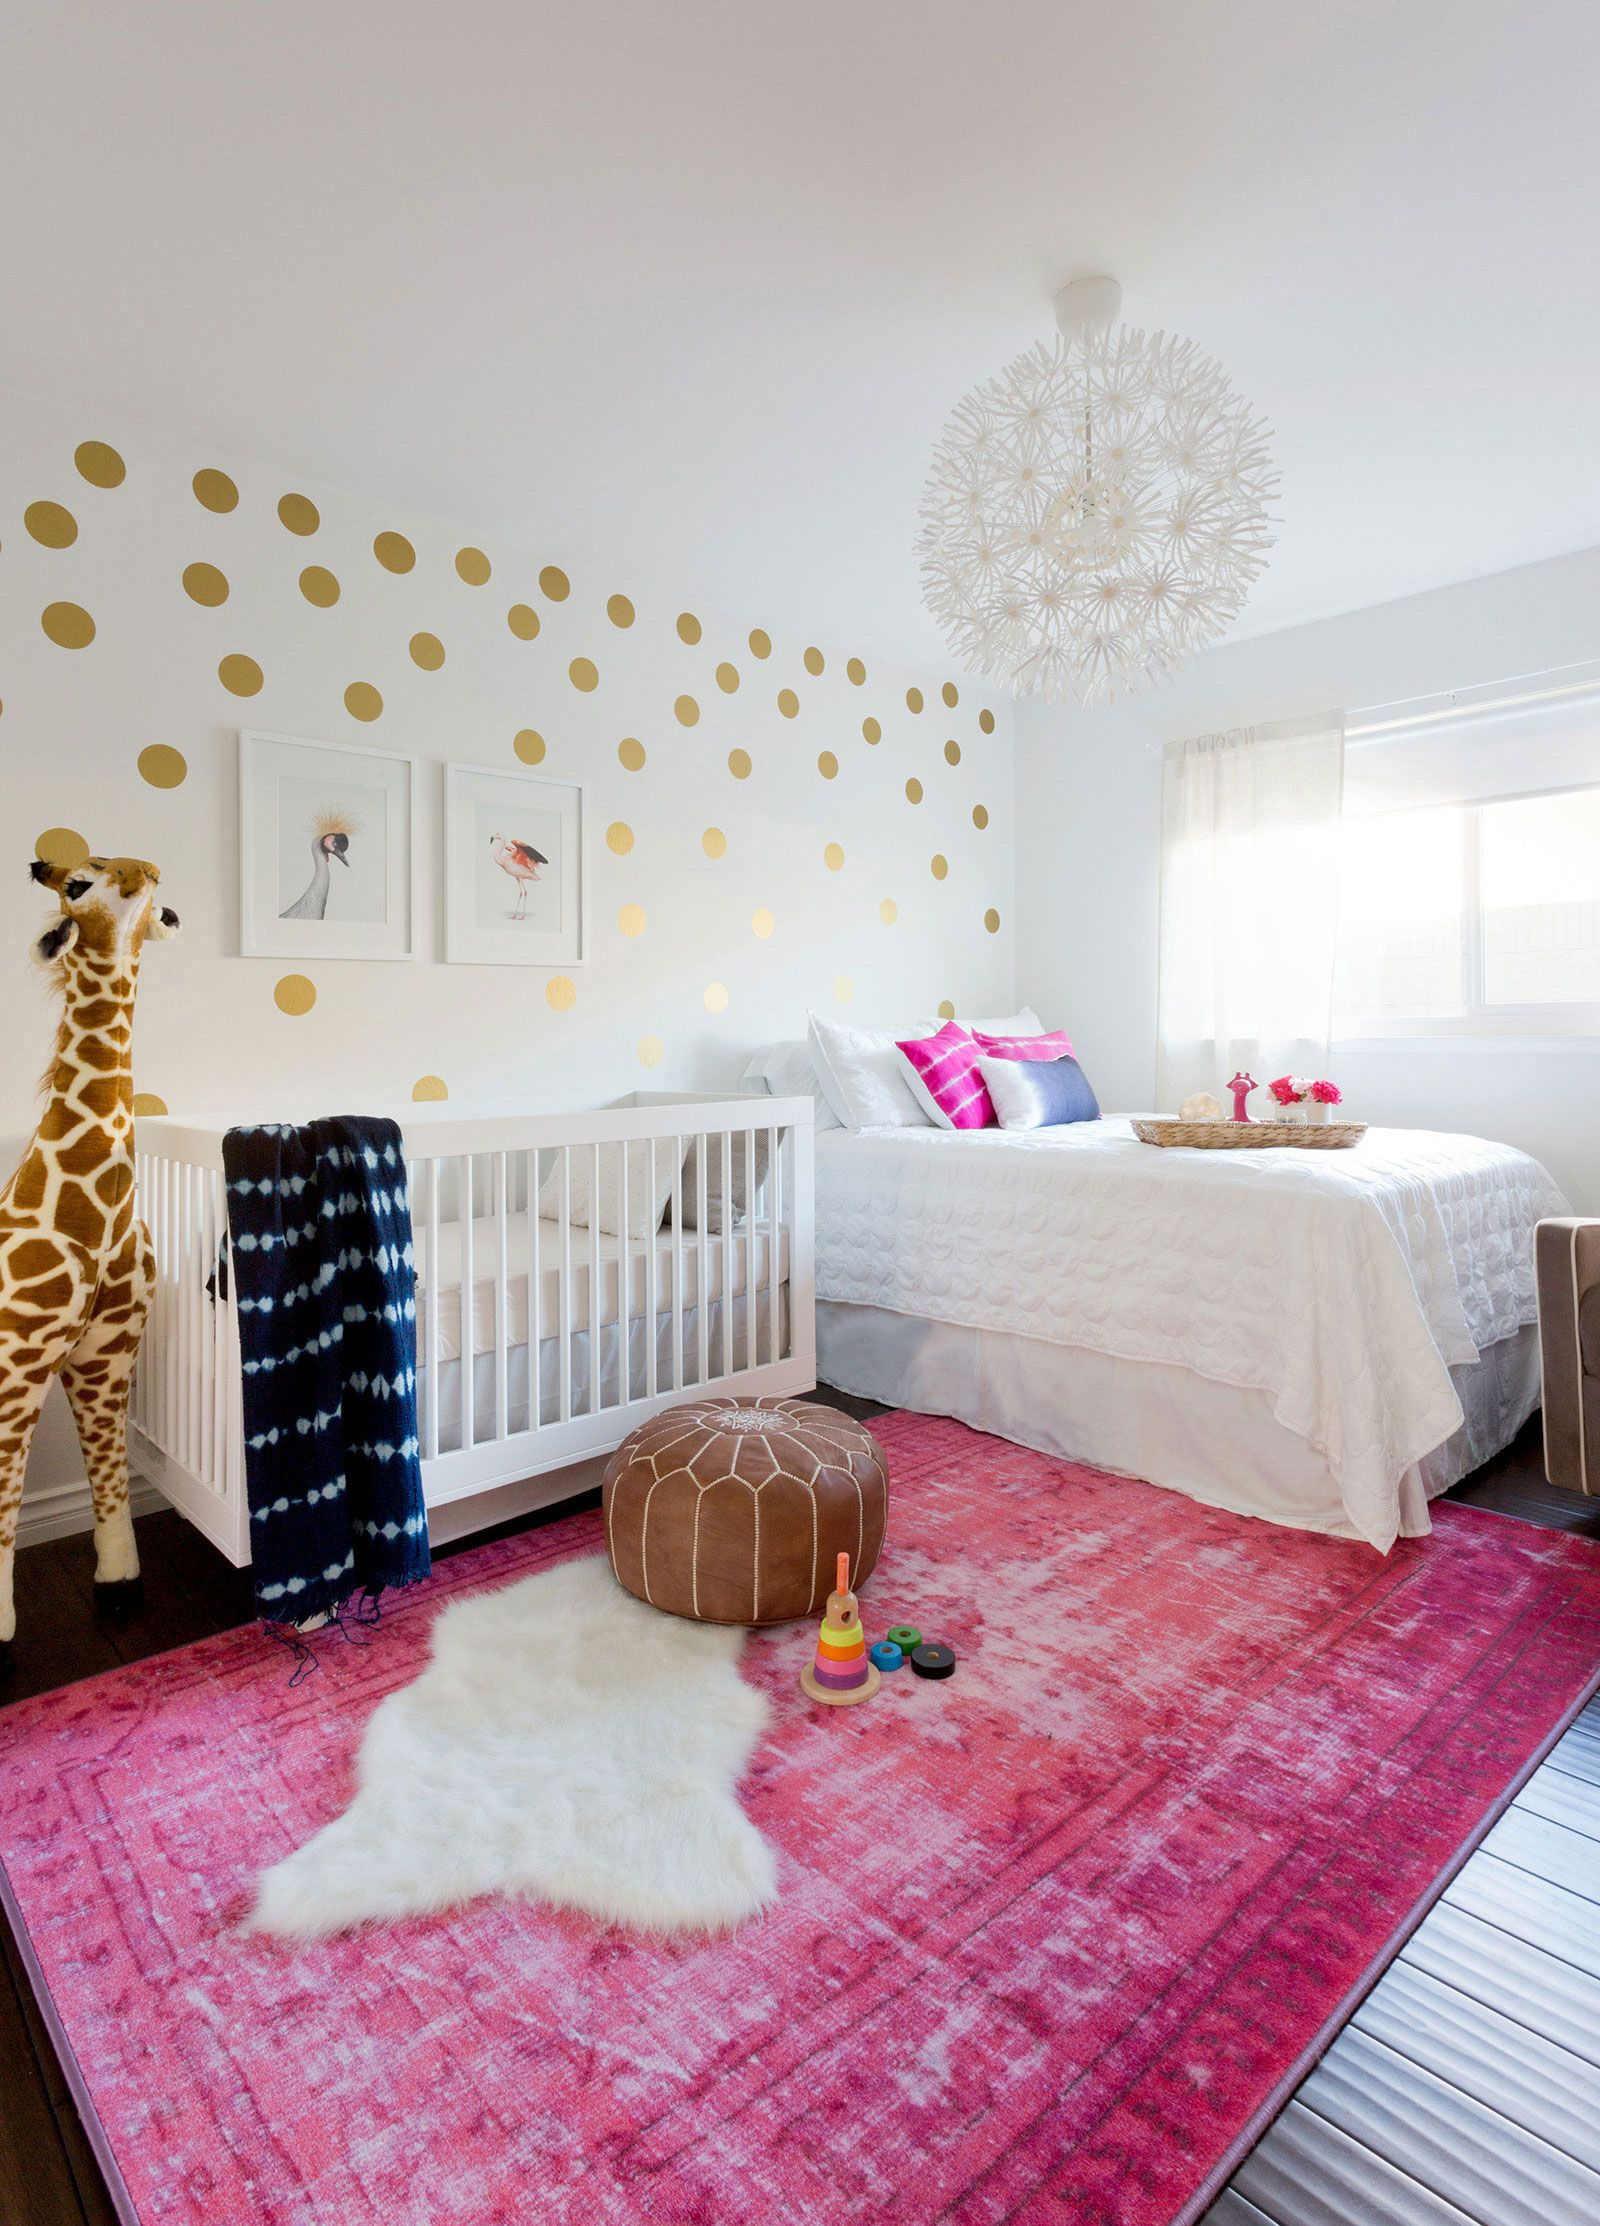 Boho Baby Nursery Love That This Was Created For A Budget Of 1500 Including Furniture